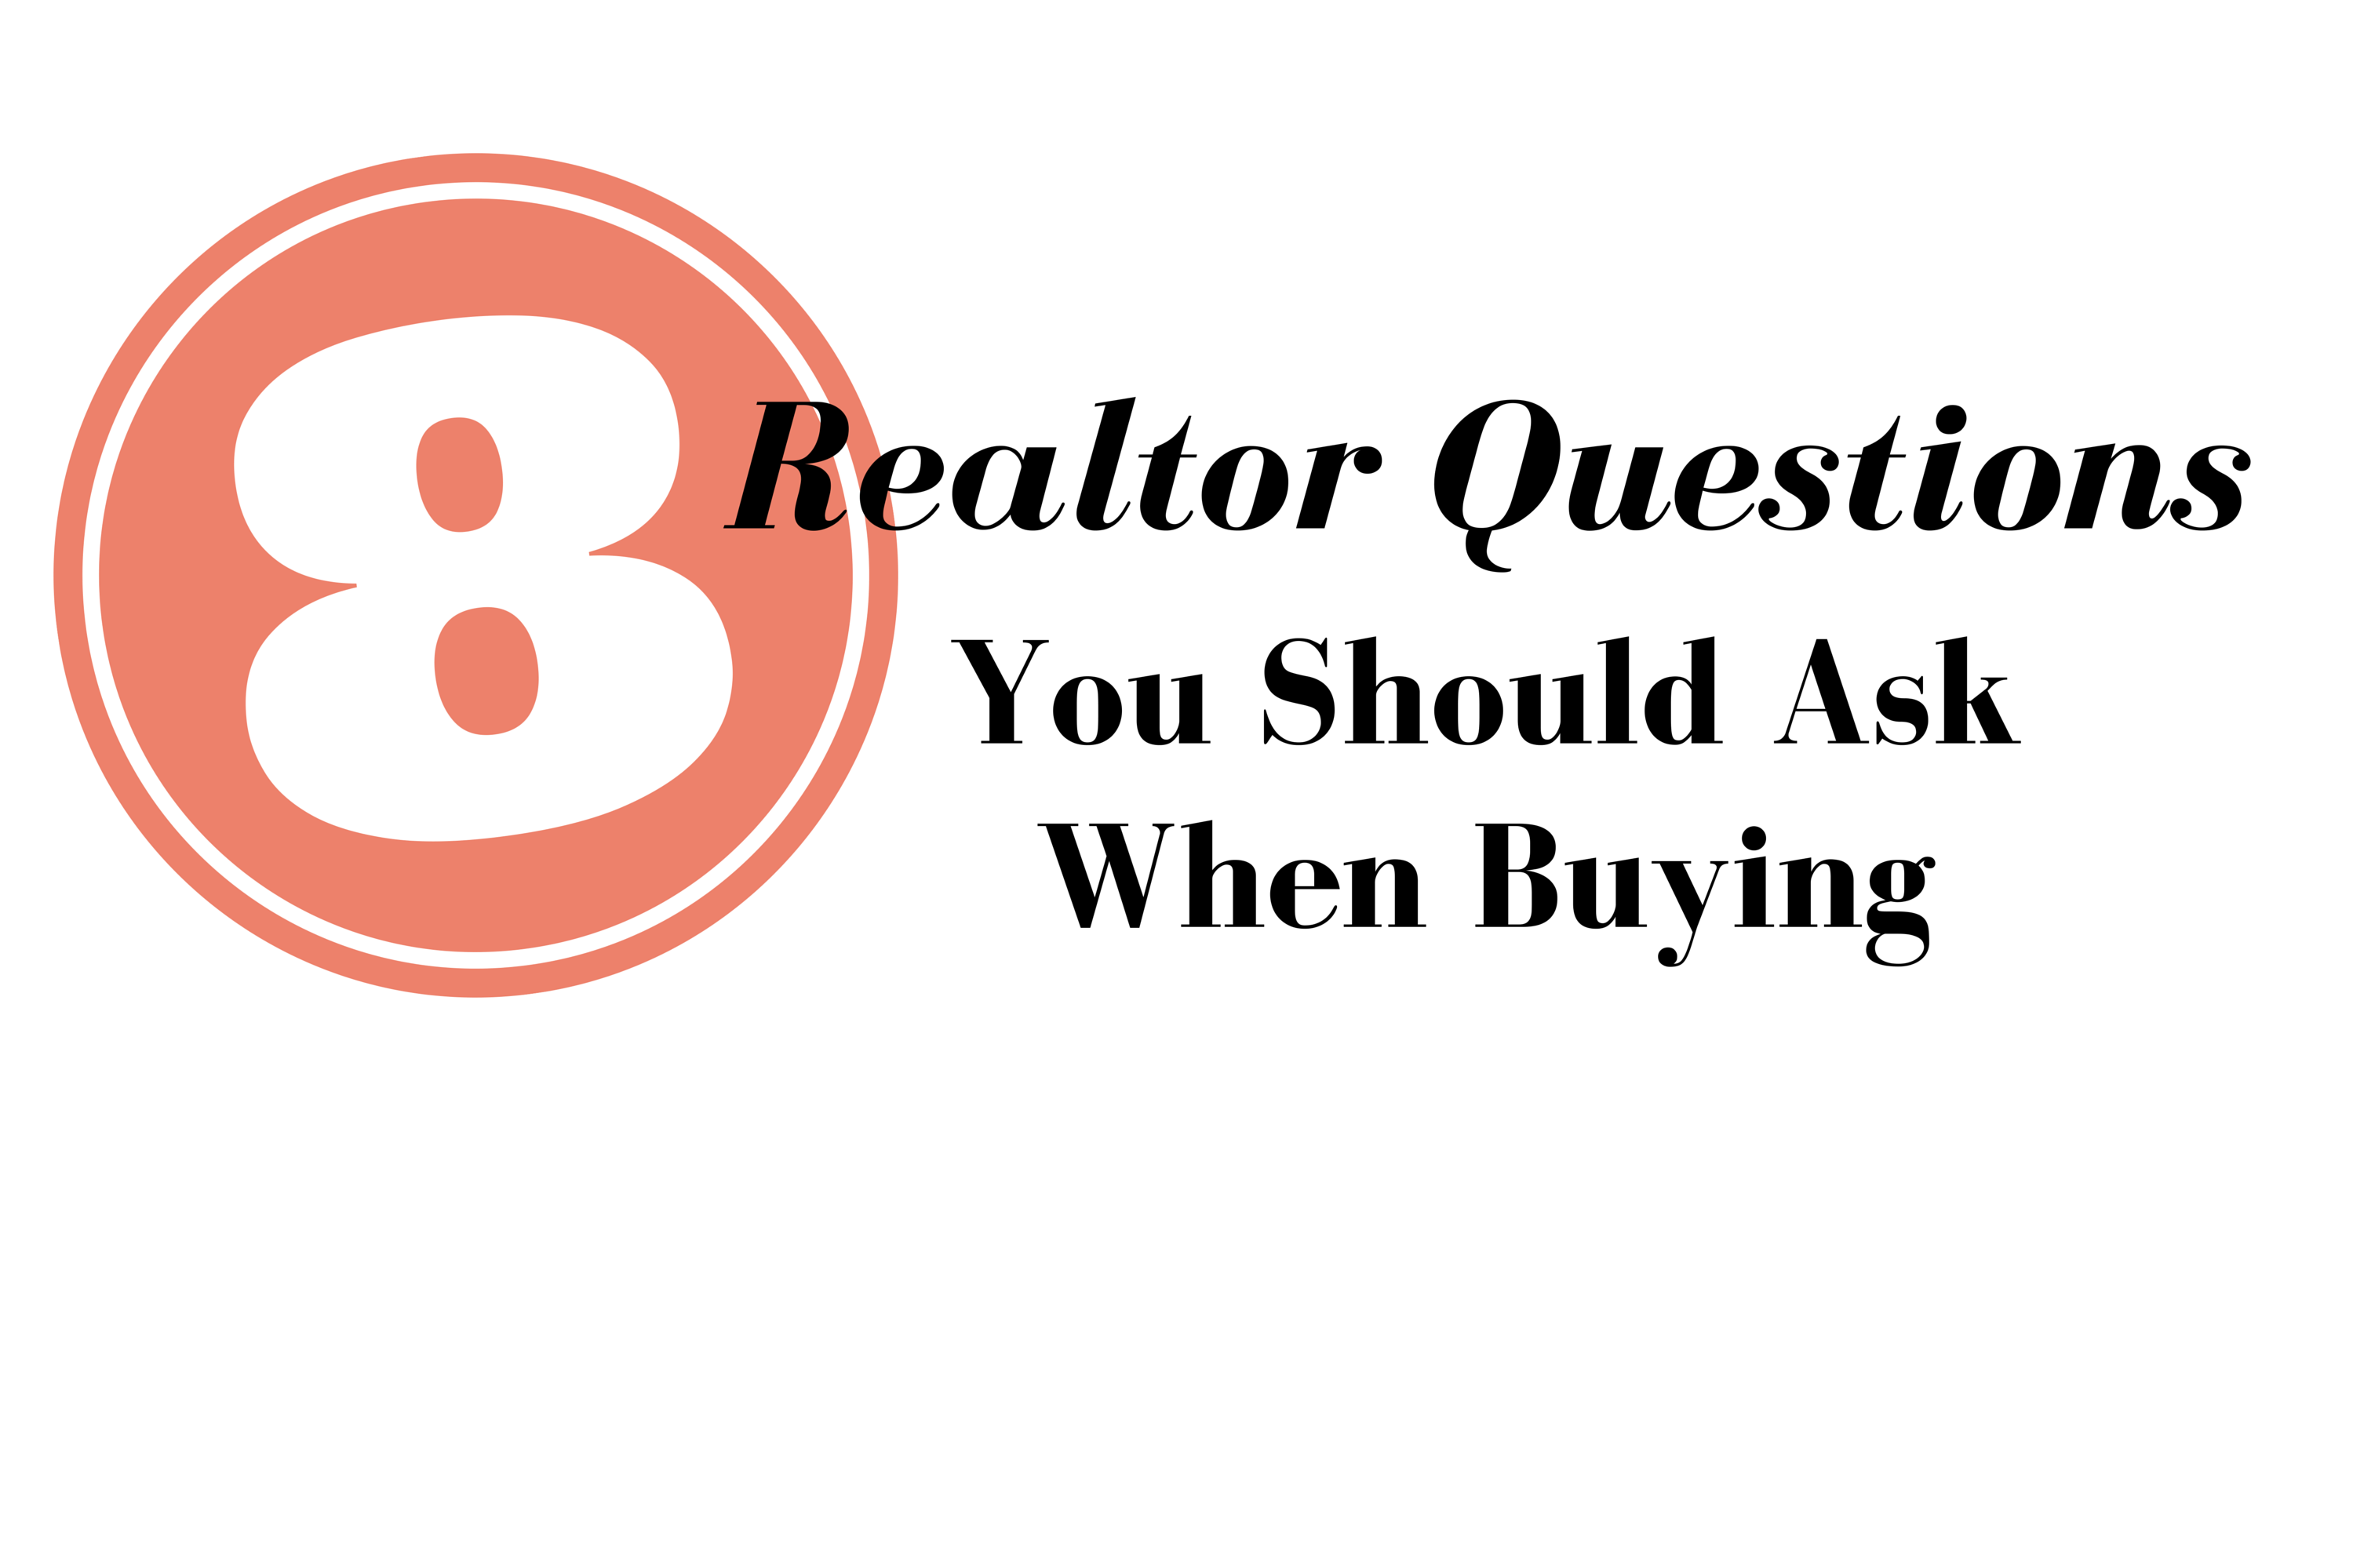 The 8 Realtor Questions You Should Ask When Buying